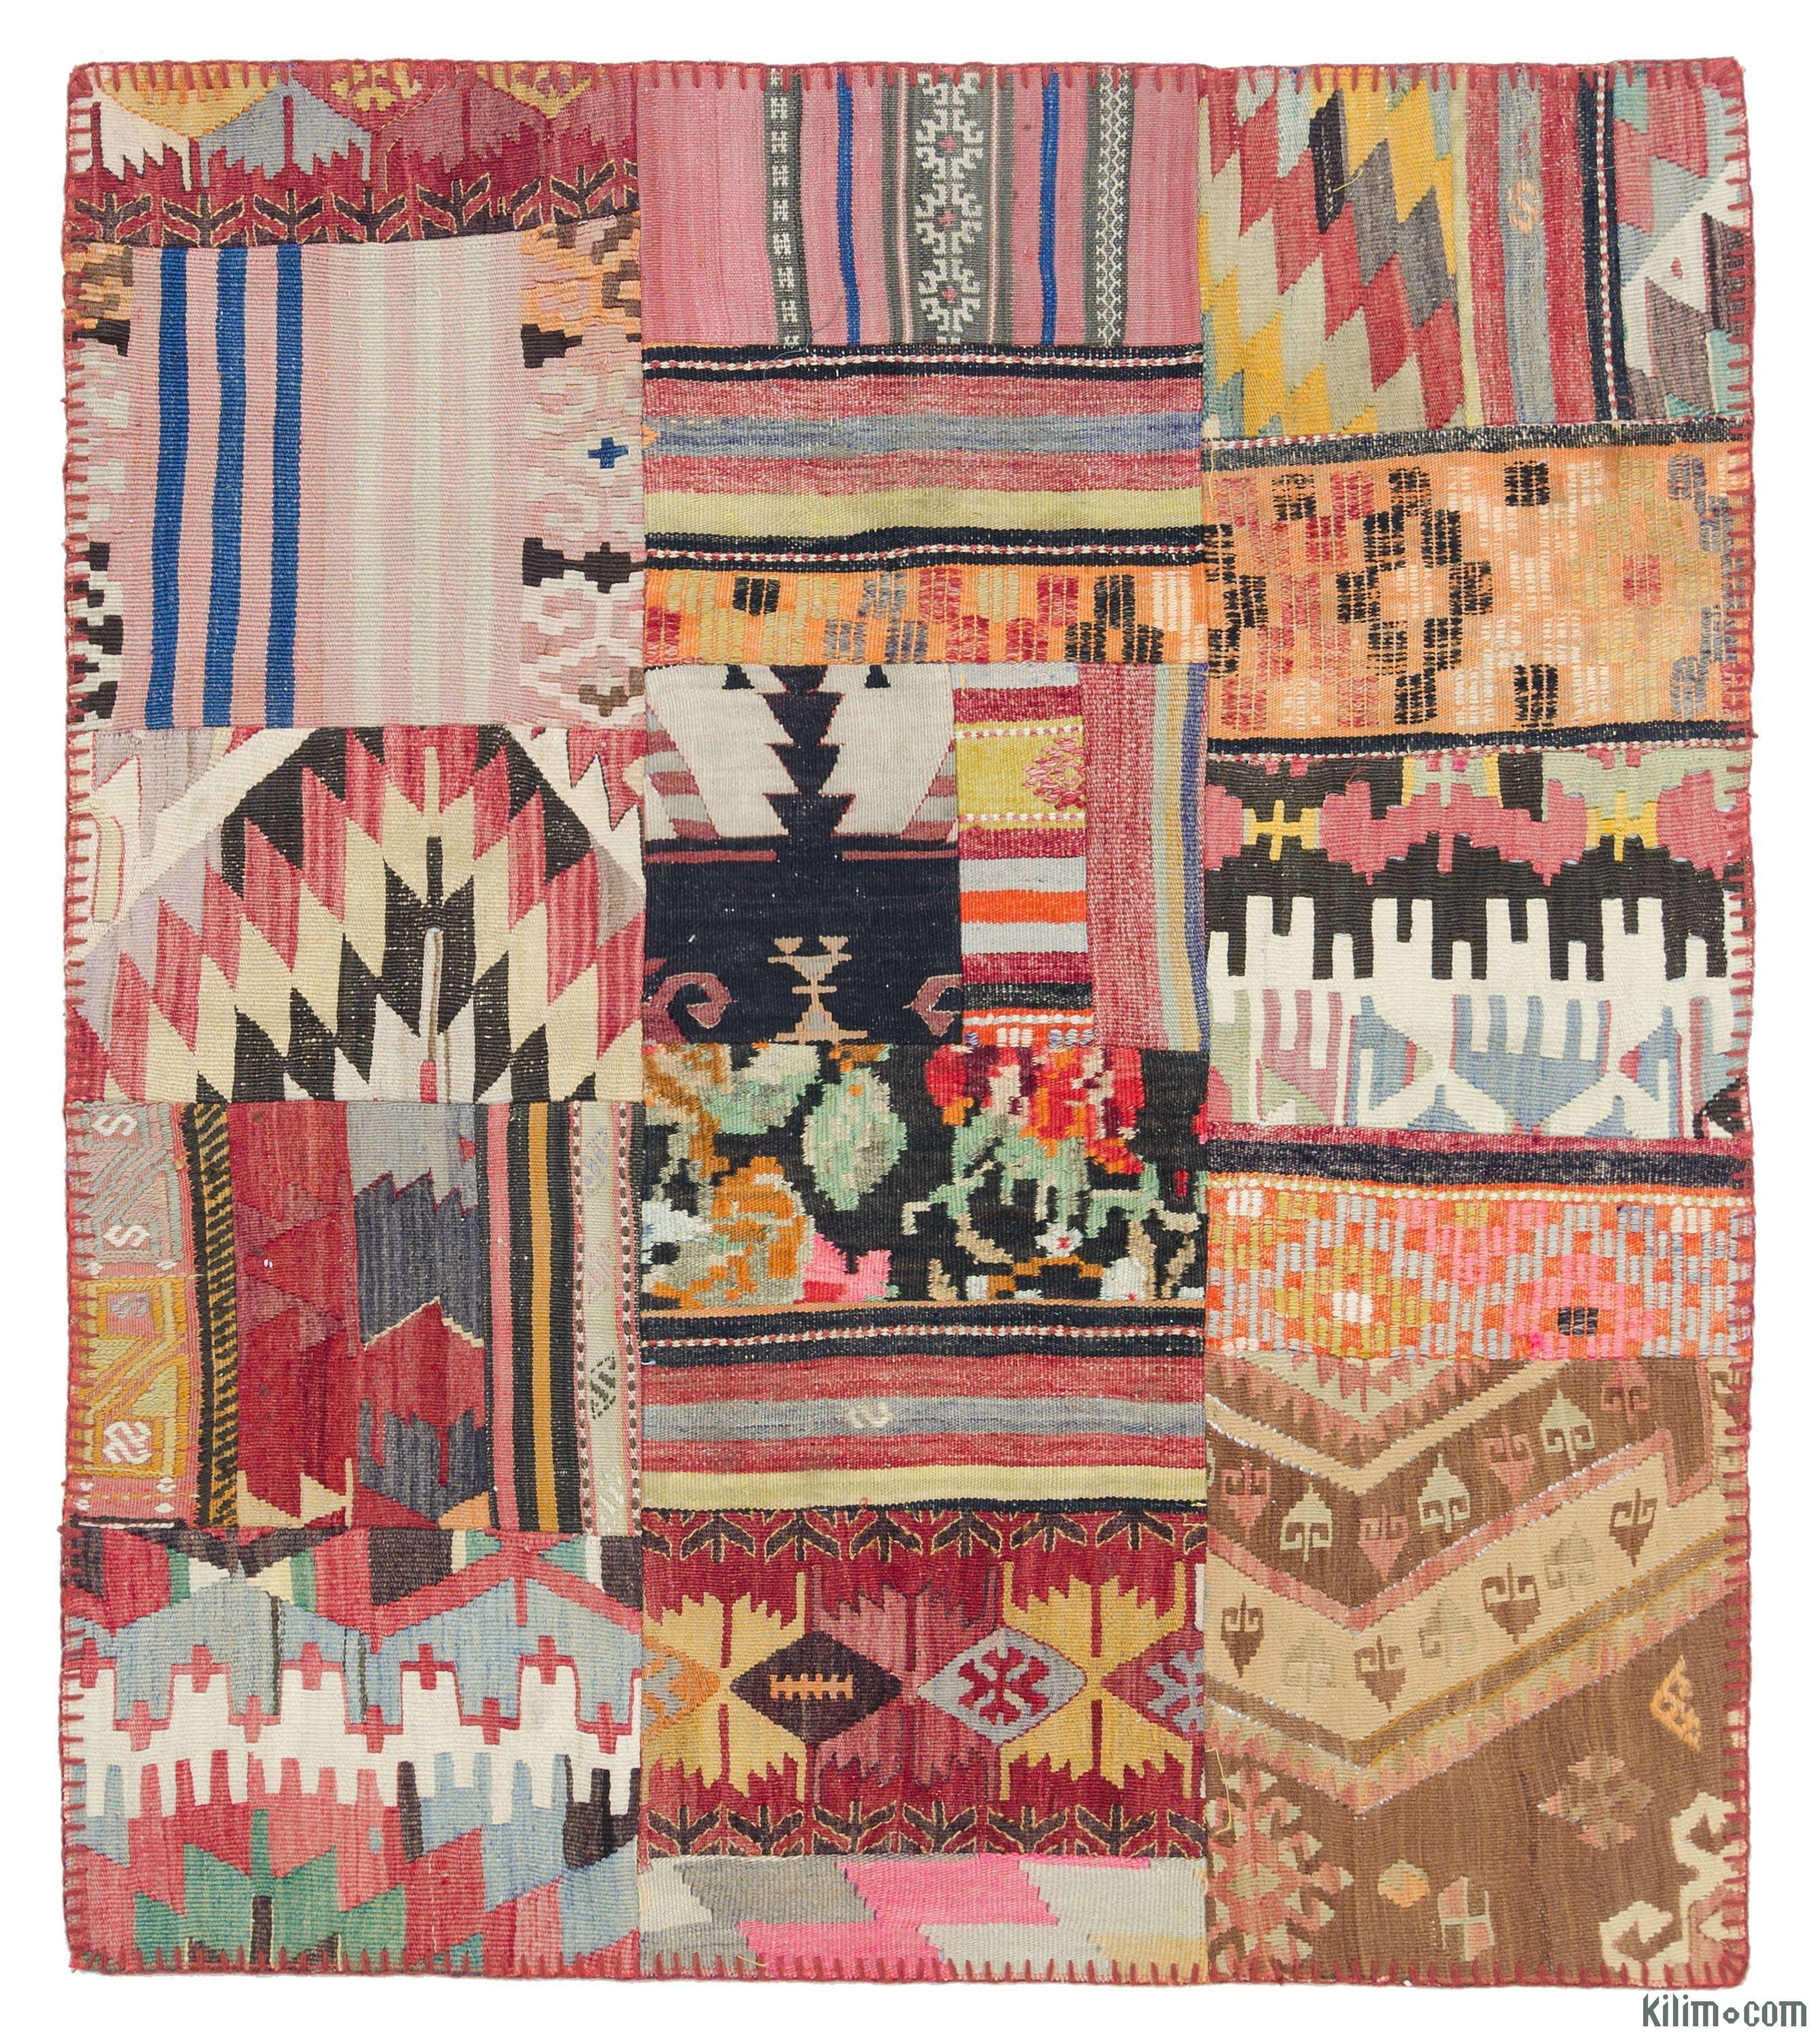 Kilim Patchwork Rug created from pieces of miscellaneous vintage handwoven Turkish kilim rugs. This piece is backed with a fabric as reinforcement.